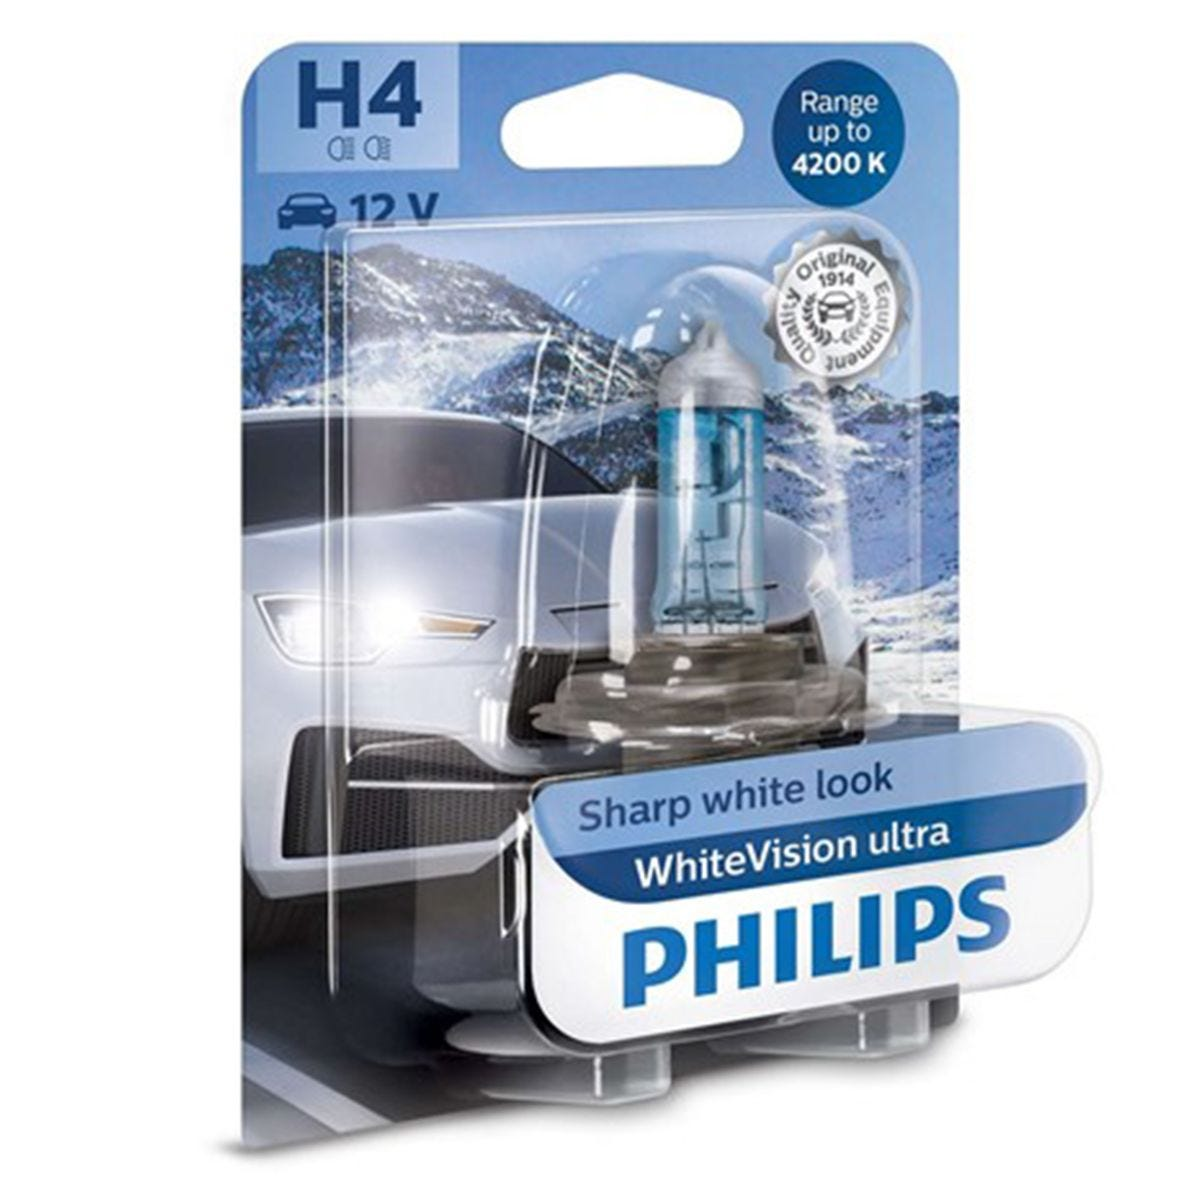 Philips WhiteVision ultra H4 Bulb